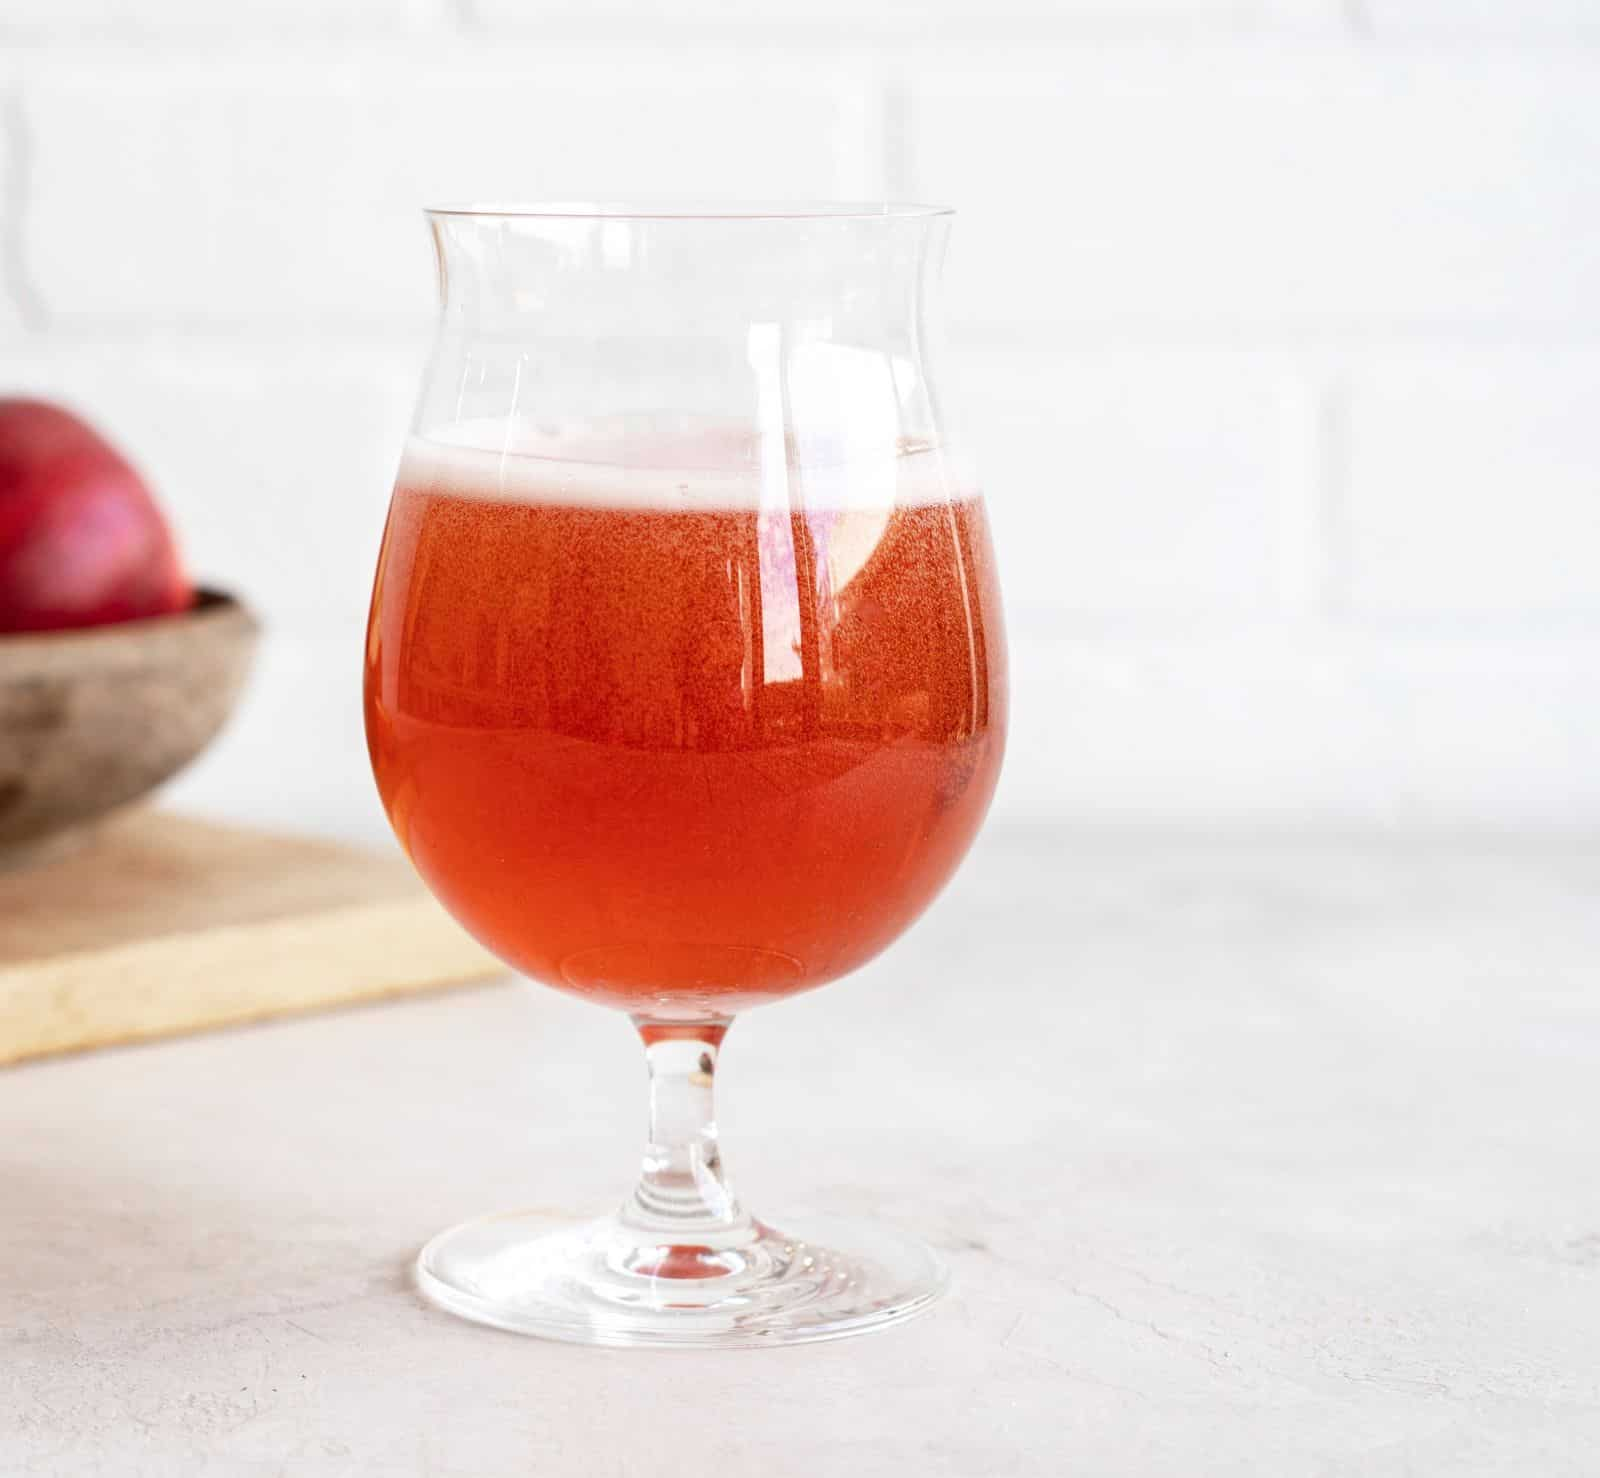 Red-Fleshed Cider